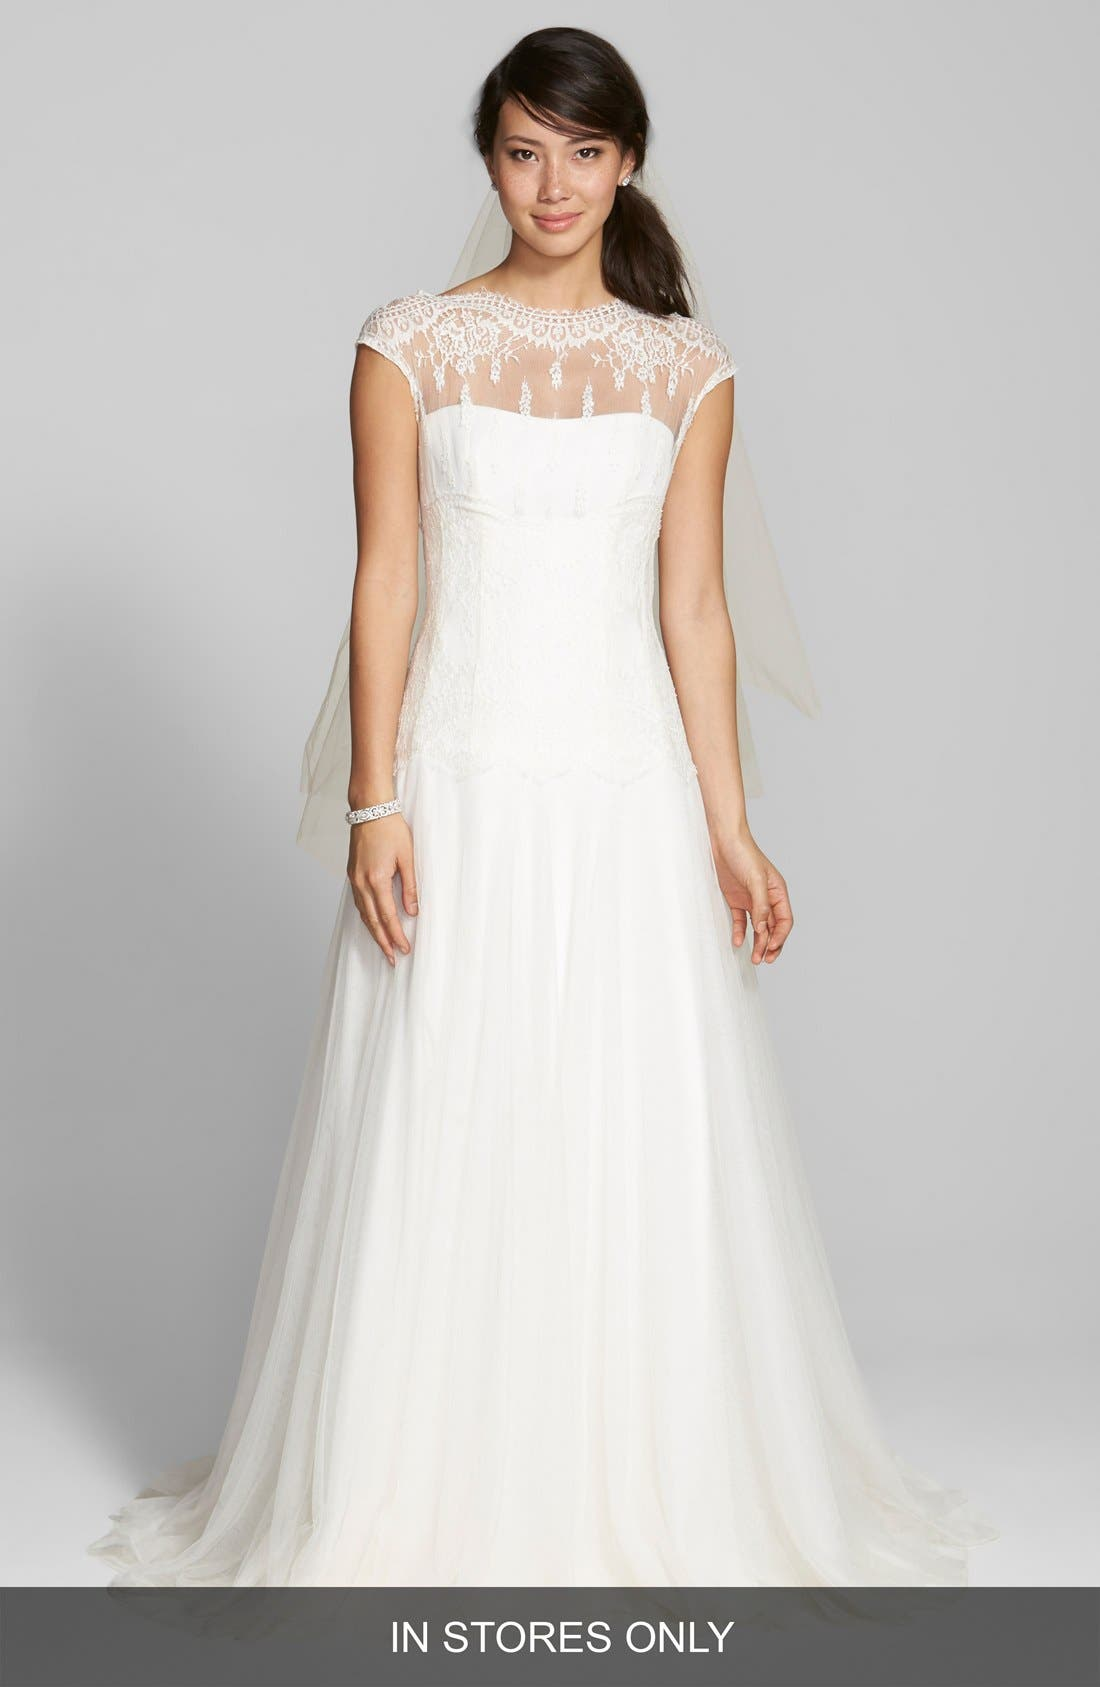 Jesus Peiro Illusion Yoke Lace & Tulle Dress